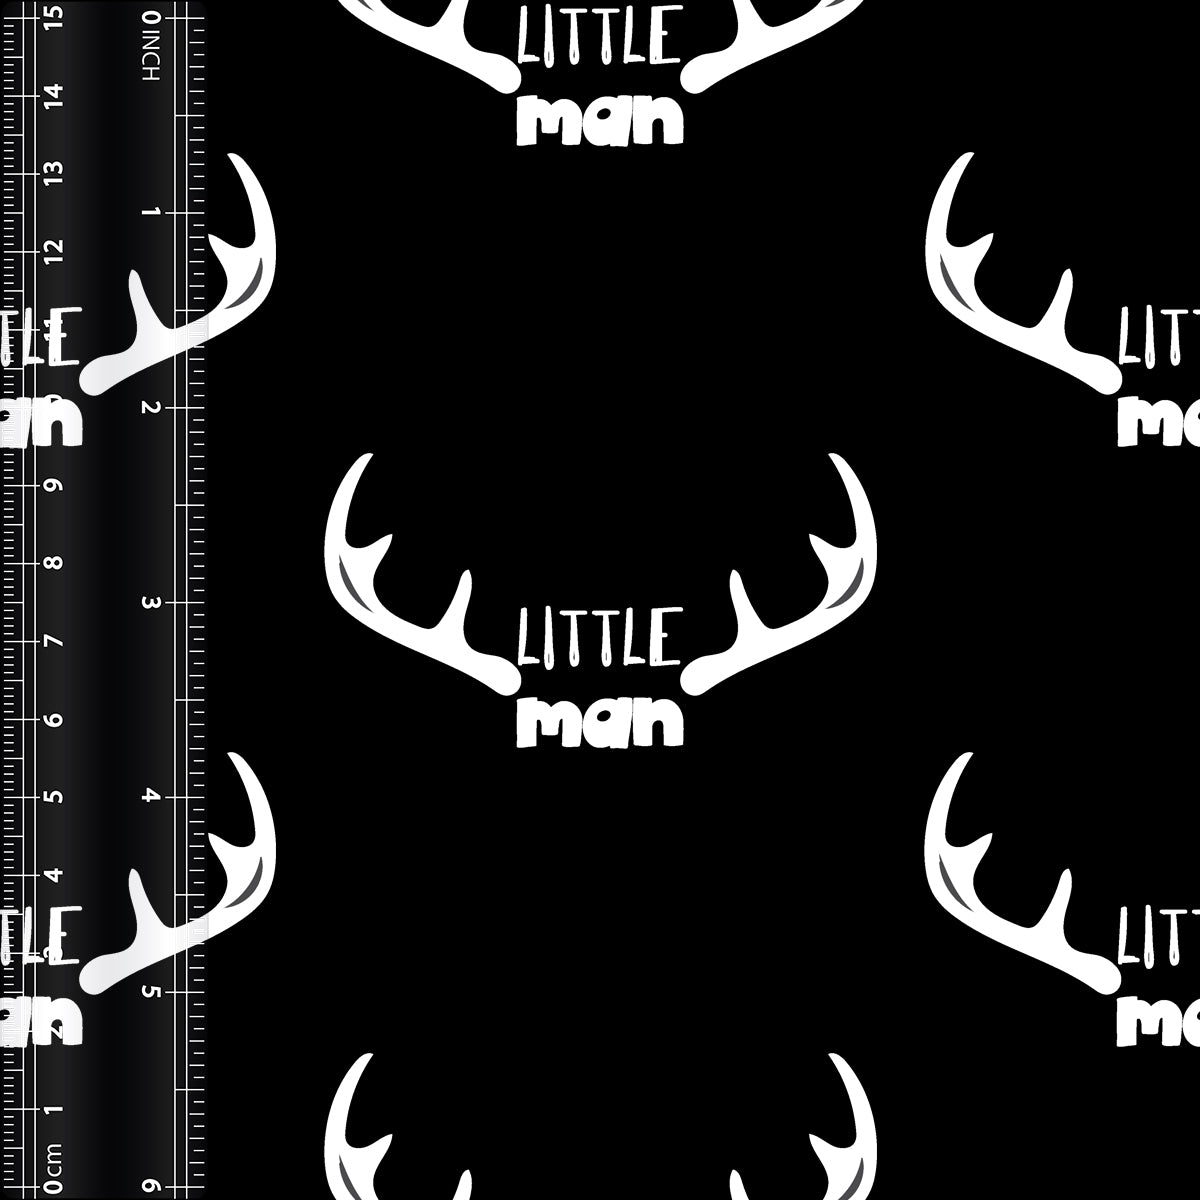 Little men - Jersey Knit